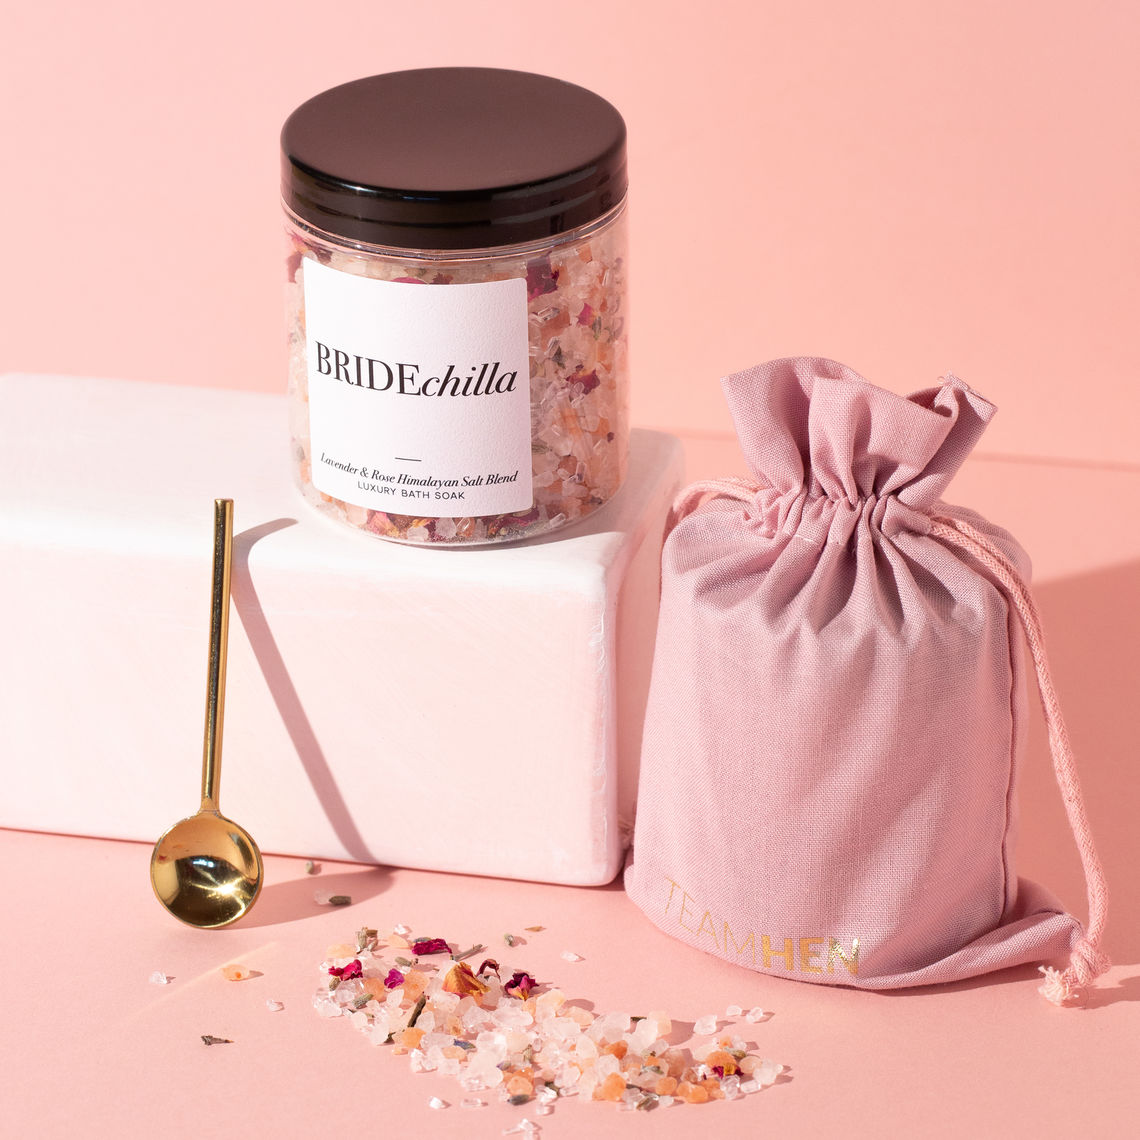 team hen luxury bridechilla himalayan salt blend bath soak 8 99